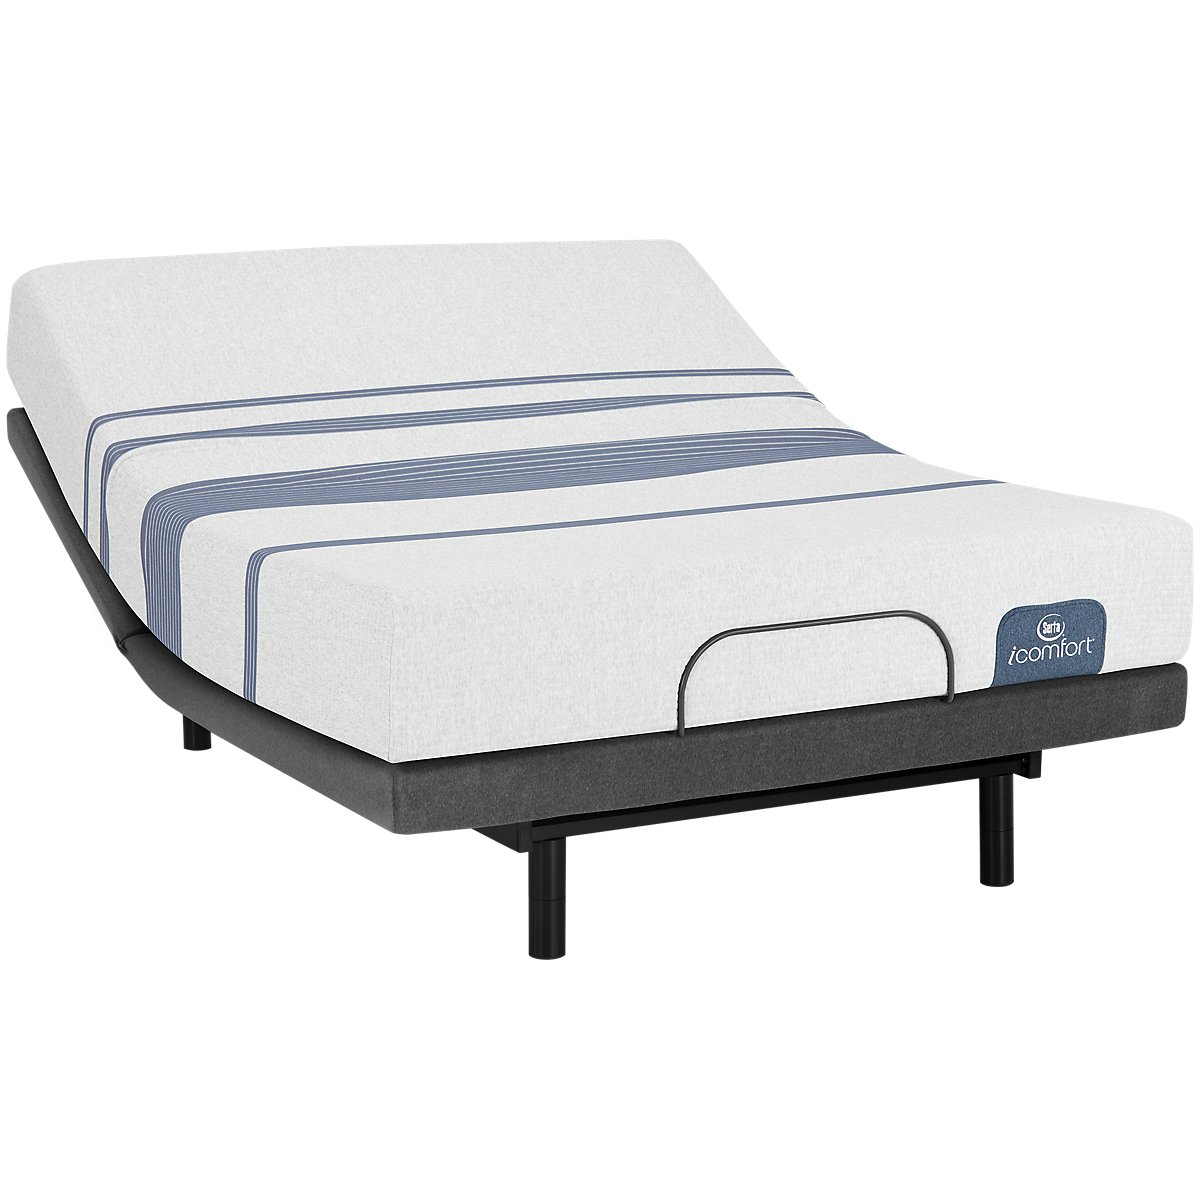 Serta iComfort Blue 100 Firm Select Adjustable Mattress Set